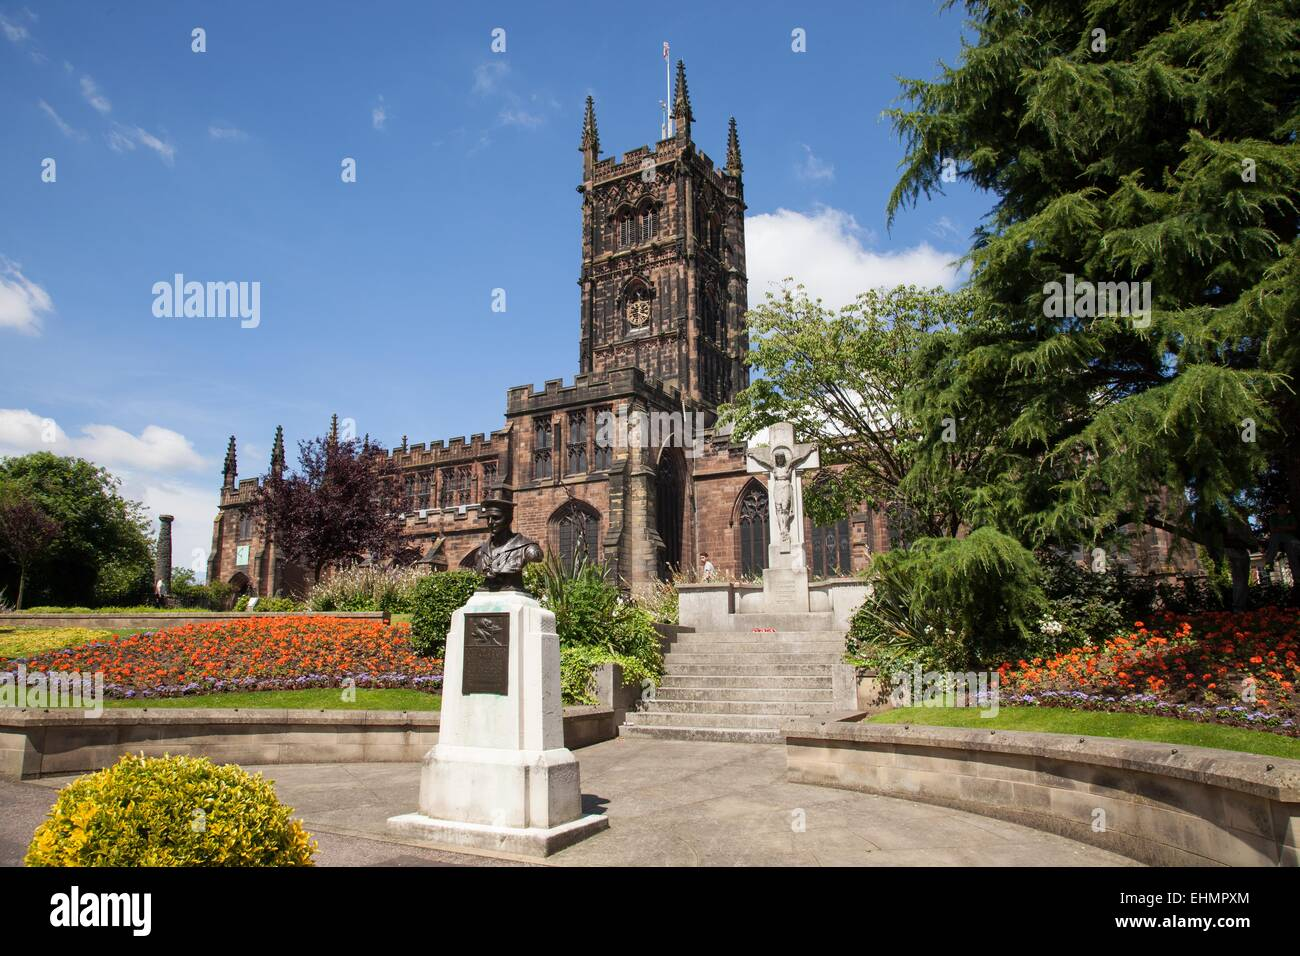 St Peter's church, Wolverhampton city centre - Stock Image